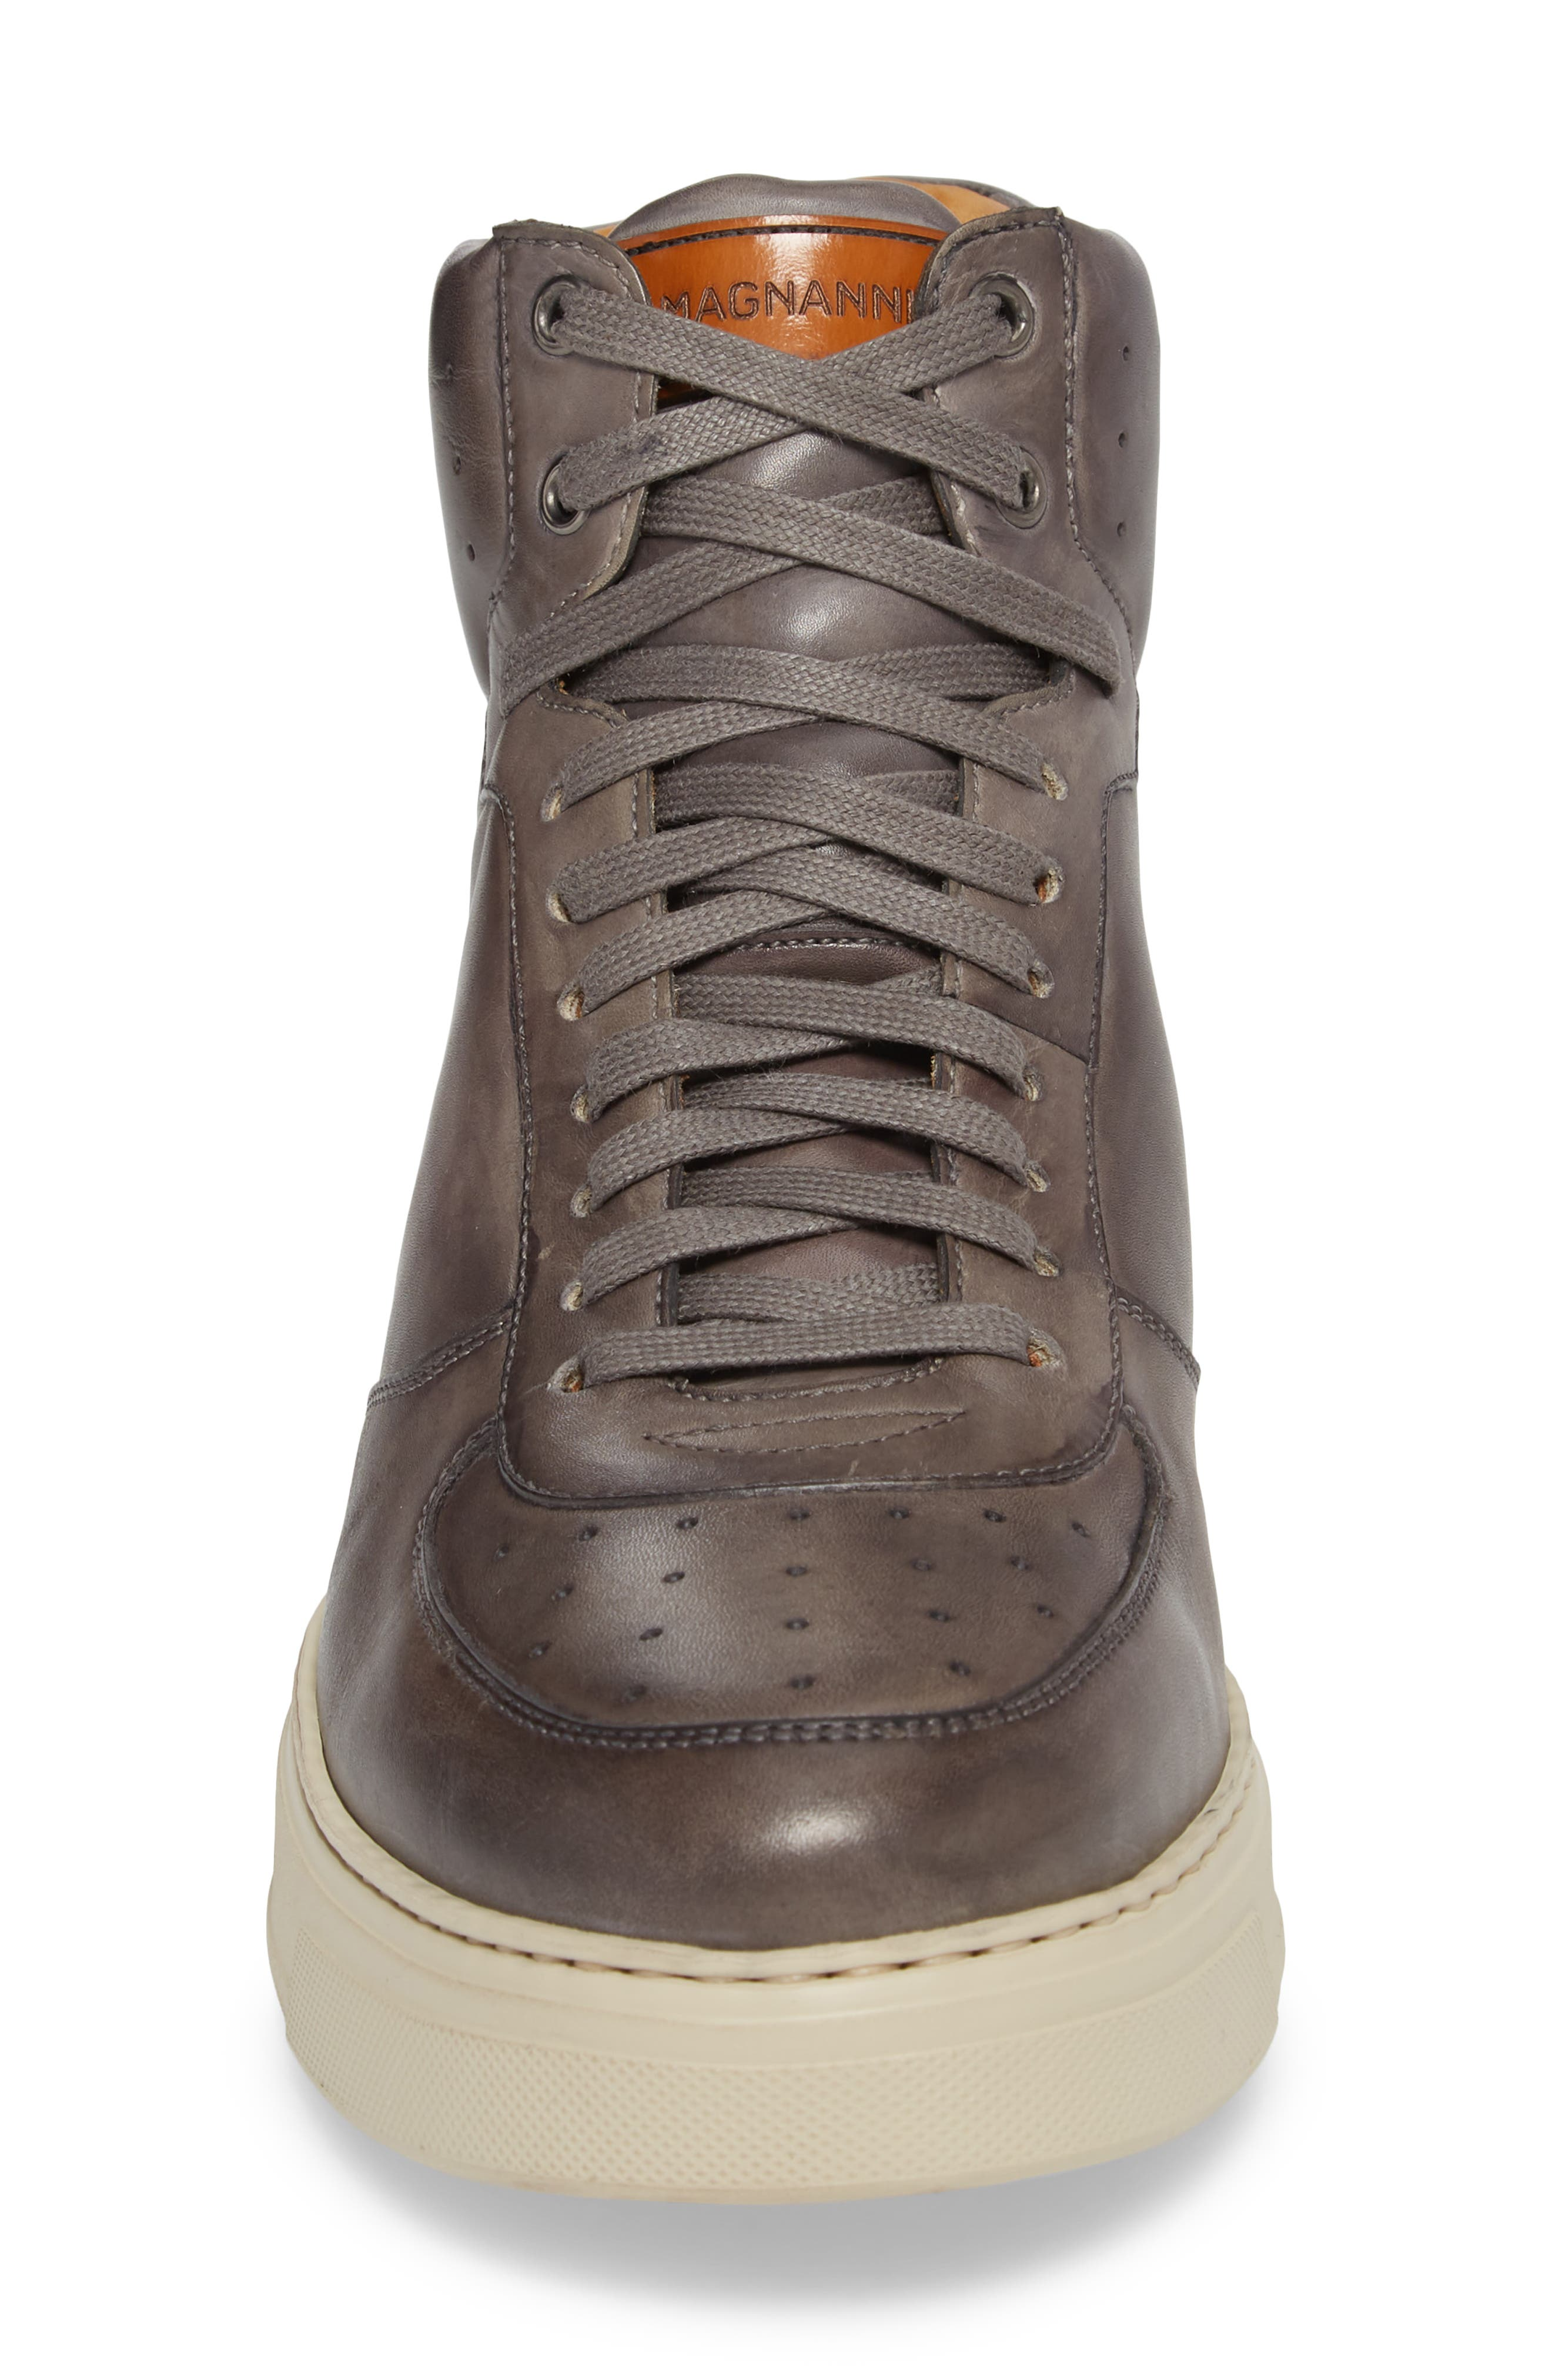 Varro Hi Top Lace Up Sneaker,                             Alternate thumbnail 4, color,                             Grey/ Grey Leather